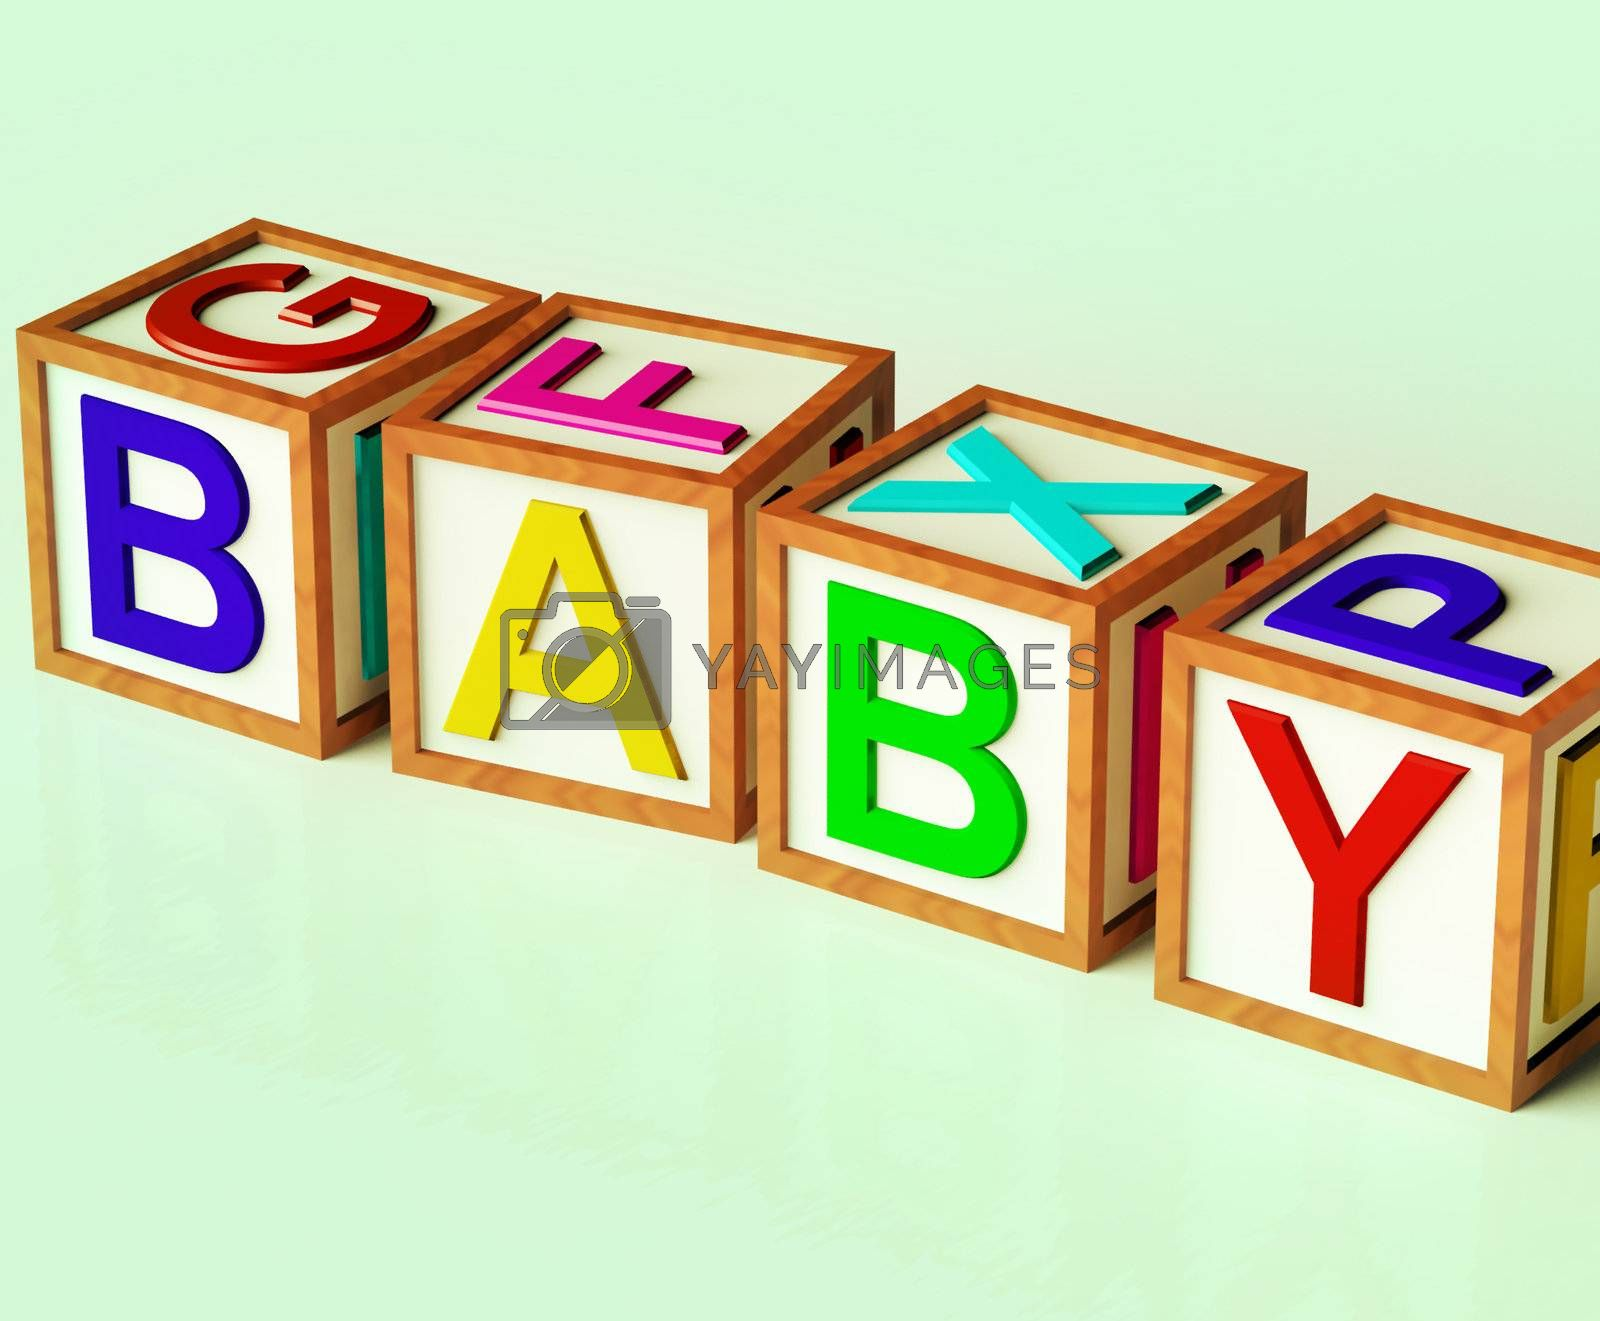 Kids Wooden Blocks Spelling Baby As Symbol for Babies And Childhood